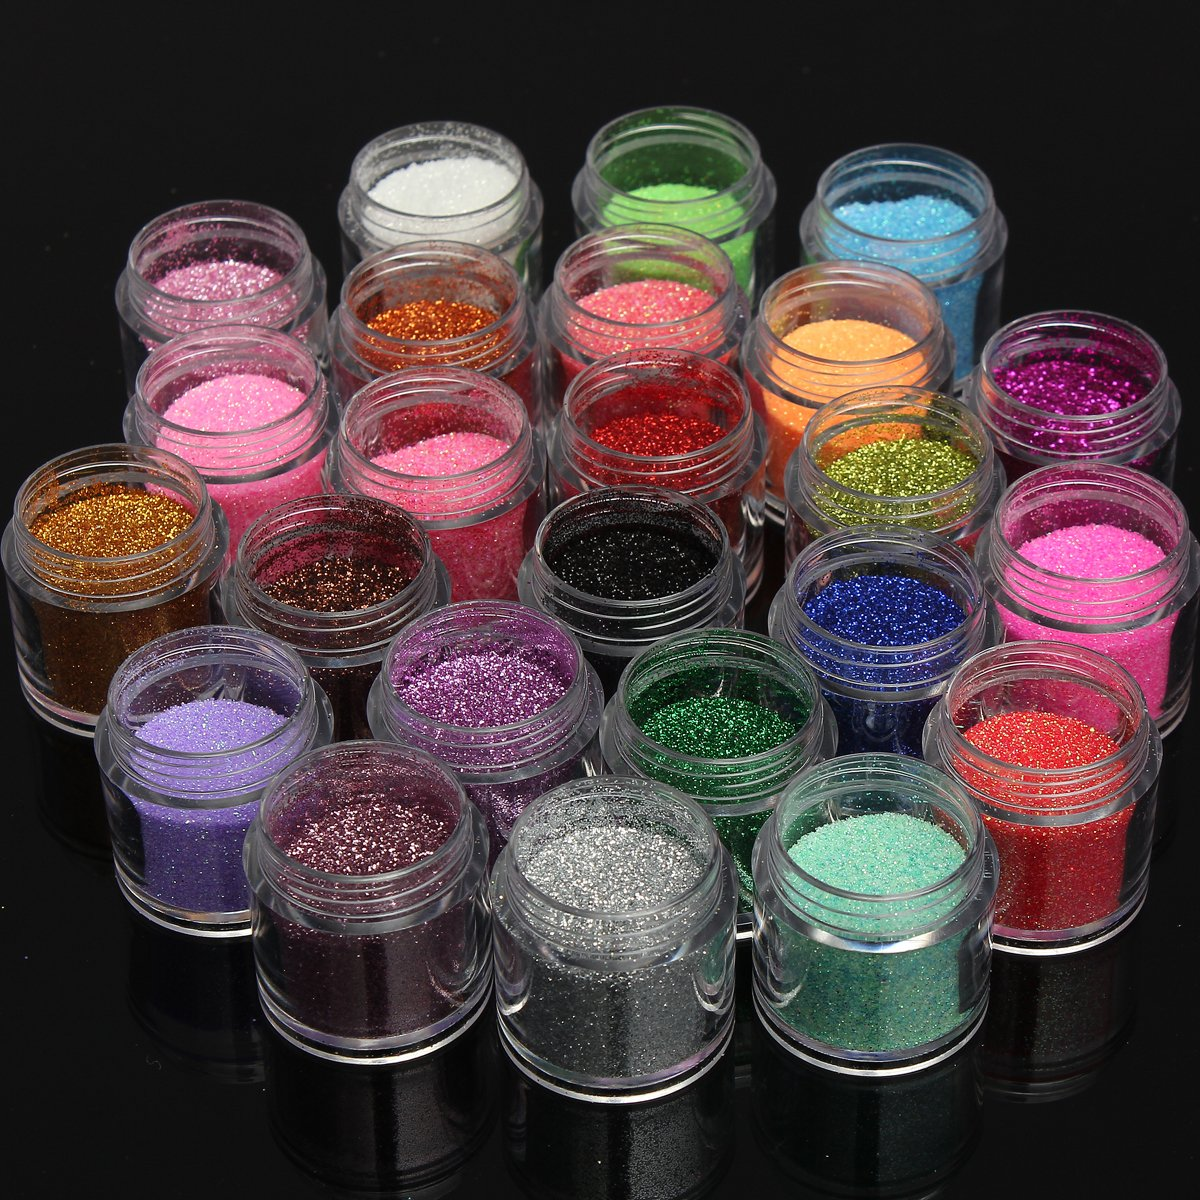 Amazon pro 24 colors pro shiny metal glitter uv powder dust amazon pro 24 colors pro shiny metal glitter uv powder dust acrylic nail art tip stamp tool beauty prinsesfo Image collections